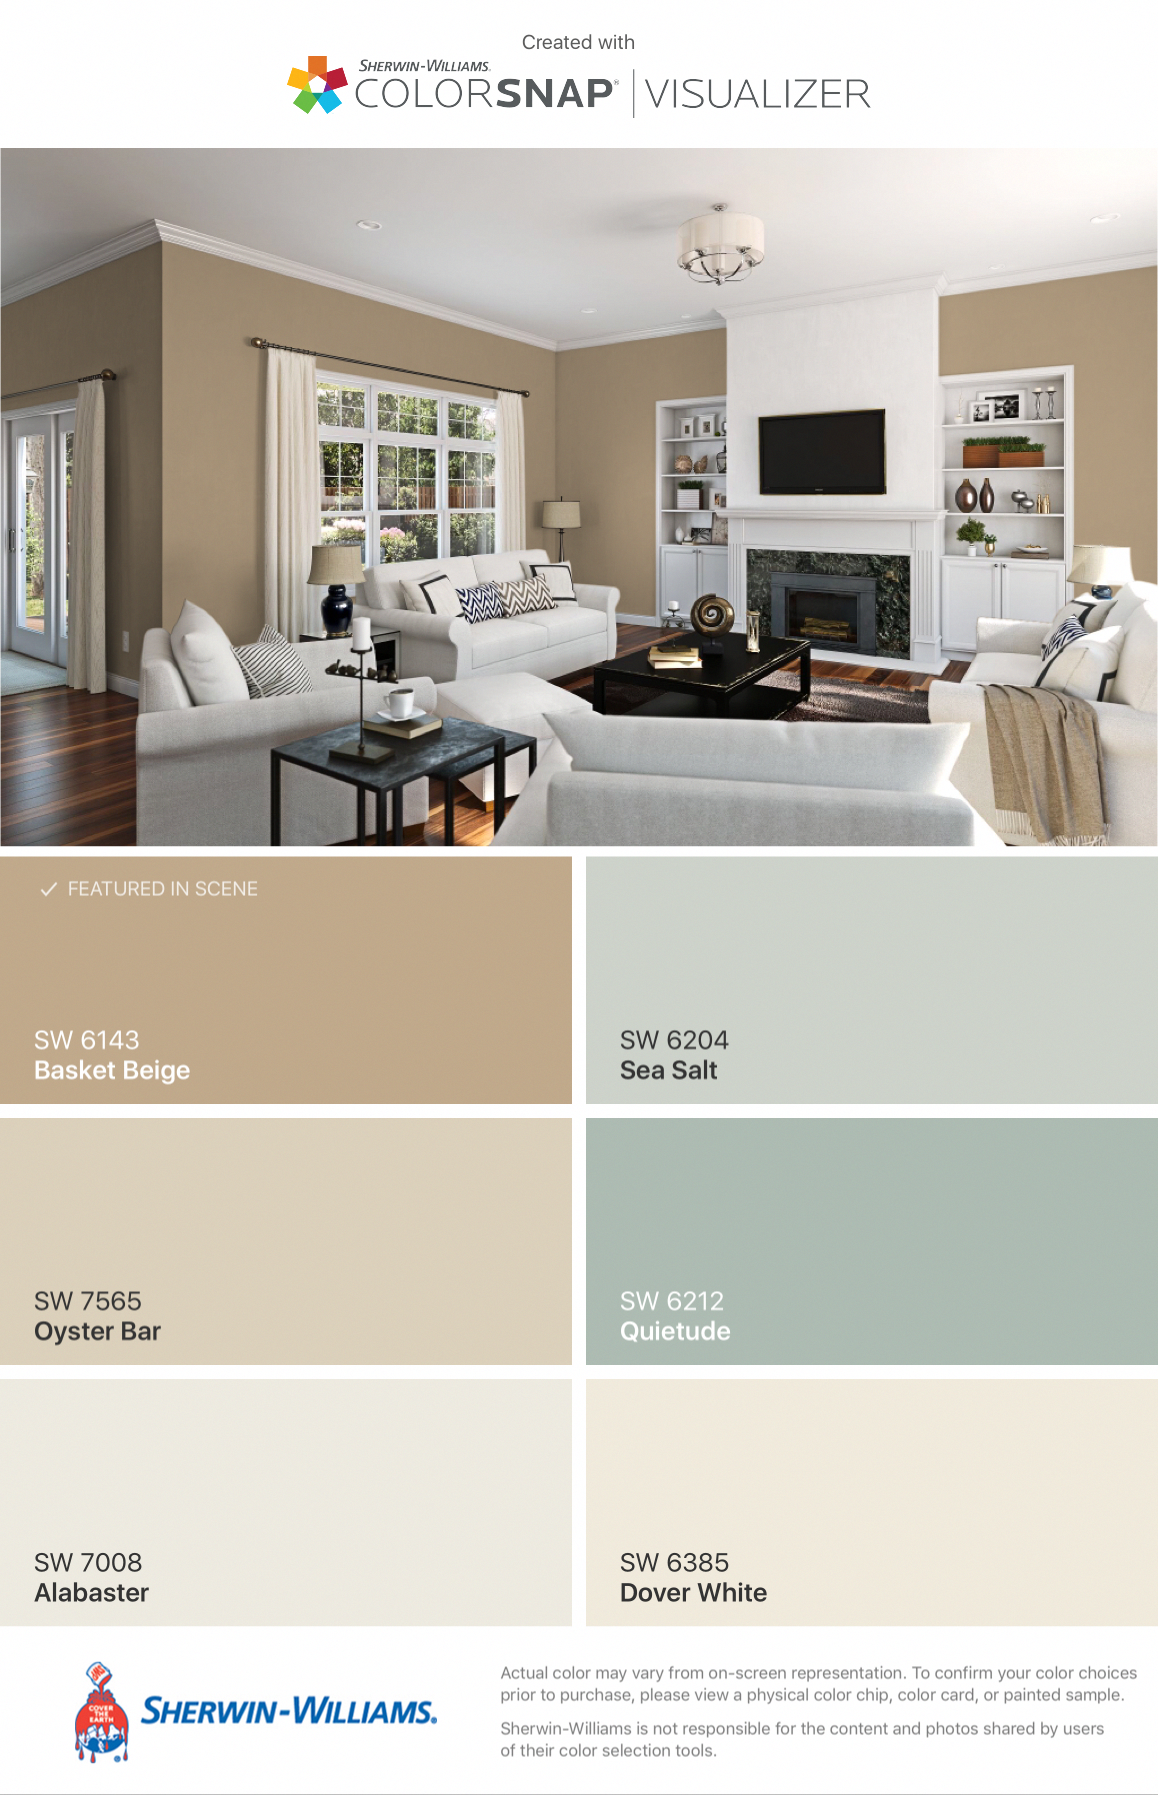 Modern Family Room Design Ideas Smallroomdesign Paint Colors For Living Room Room Paint Colors Bedroom Paint Colors